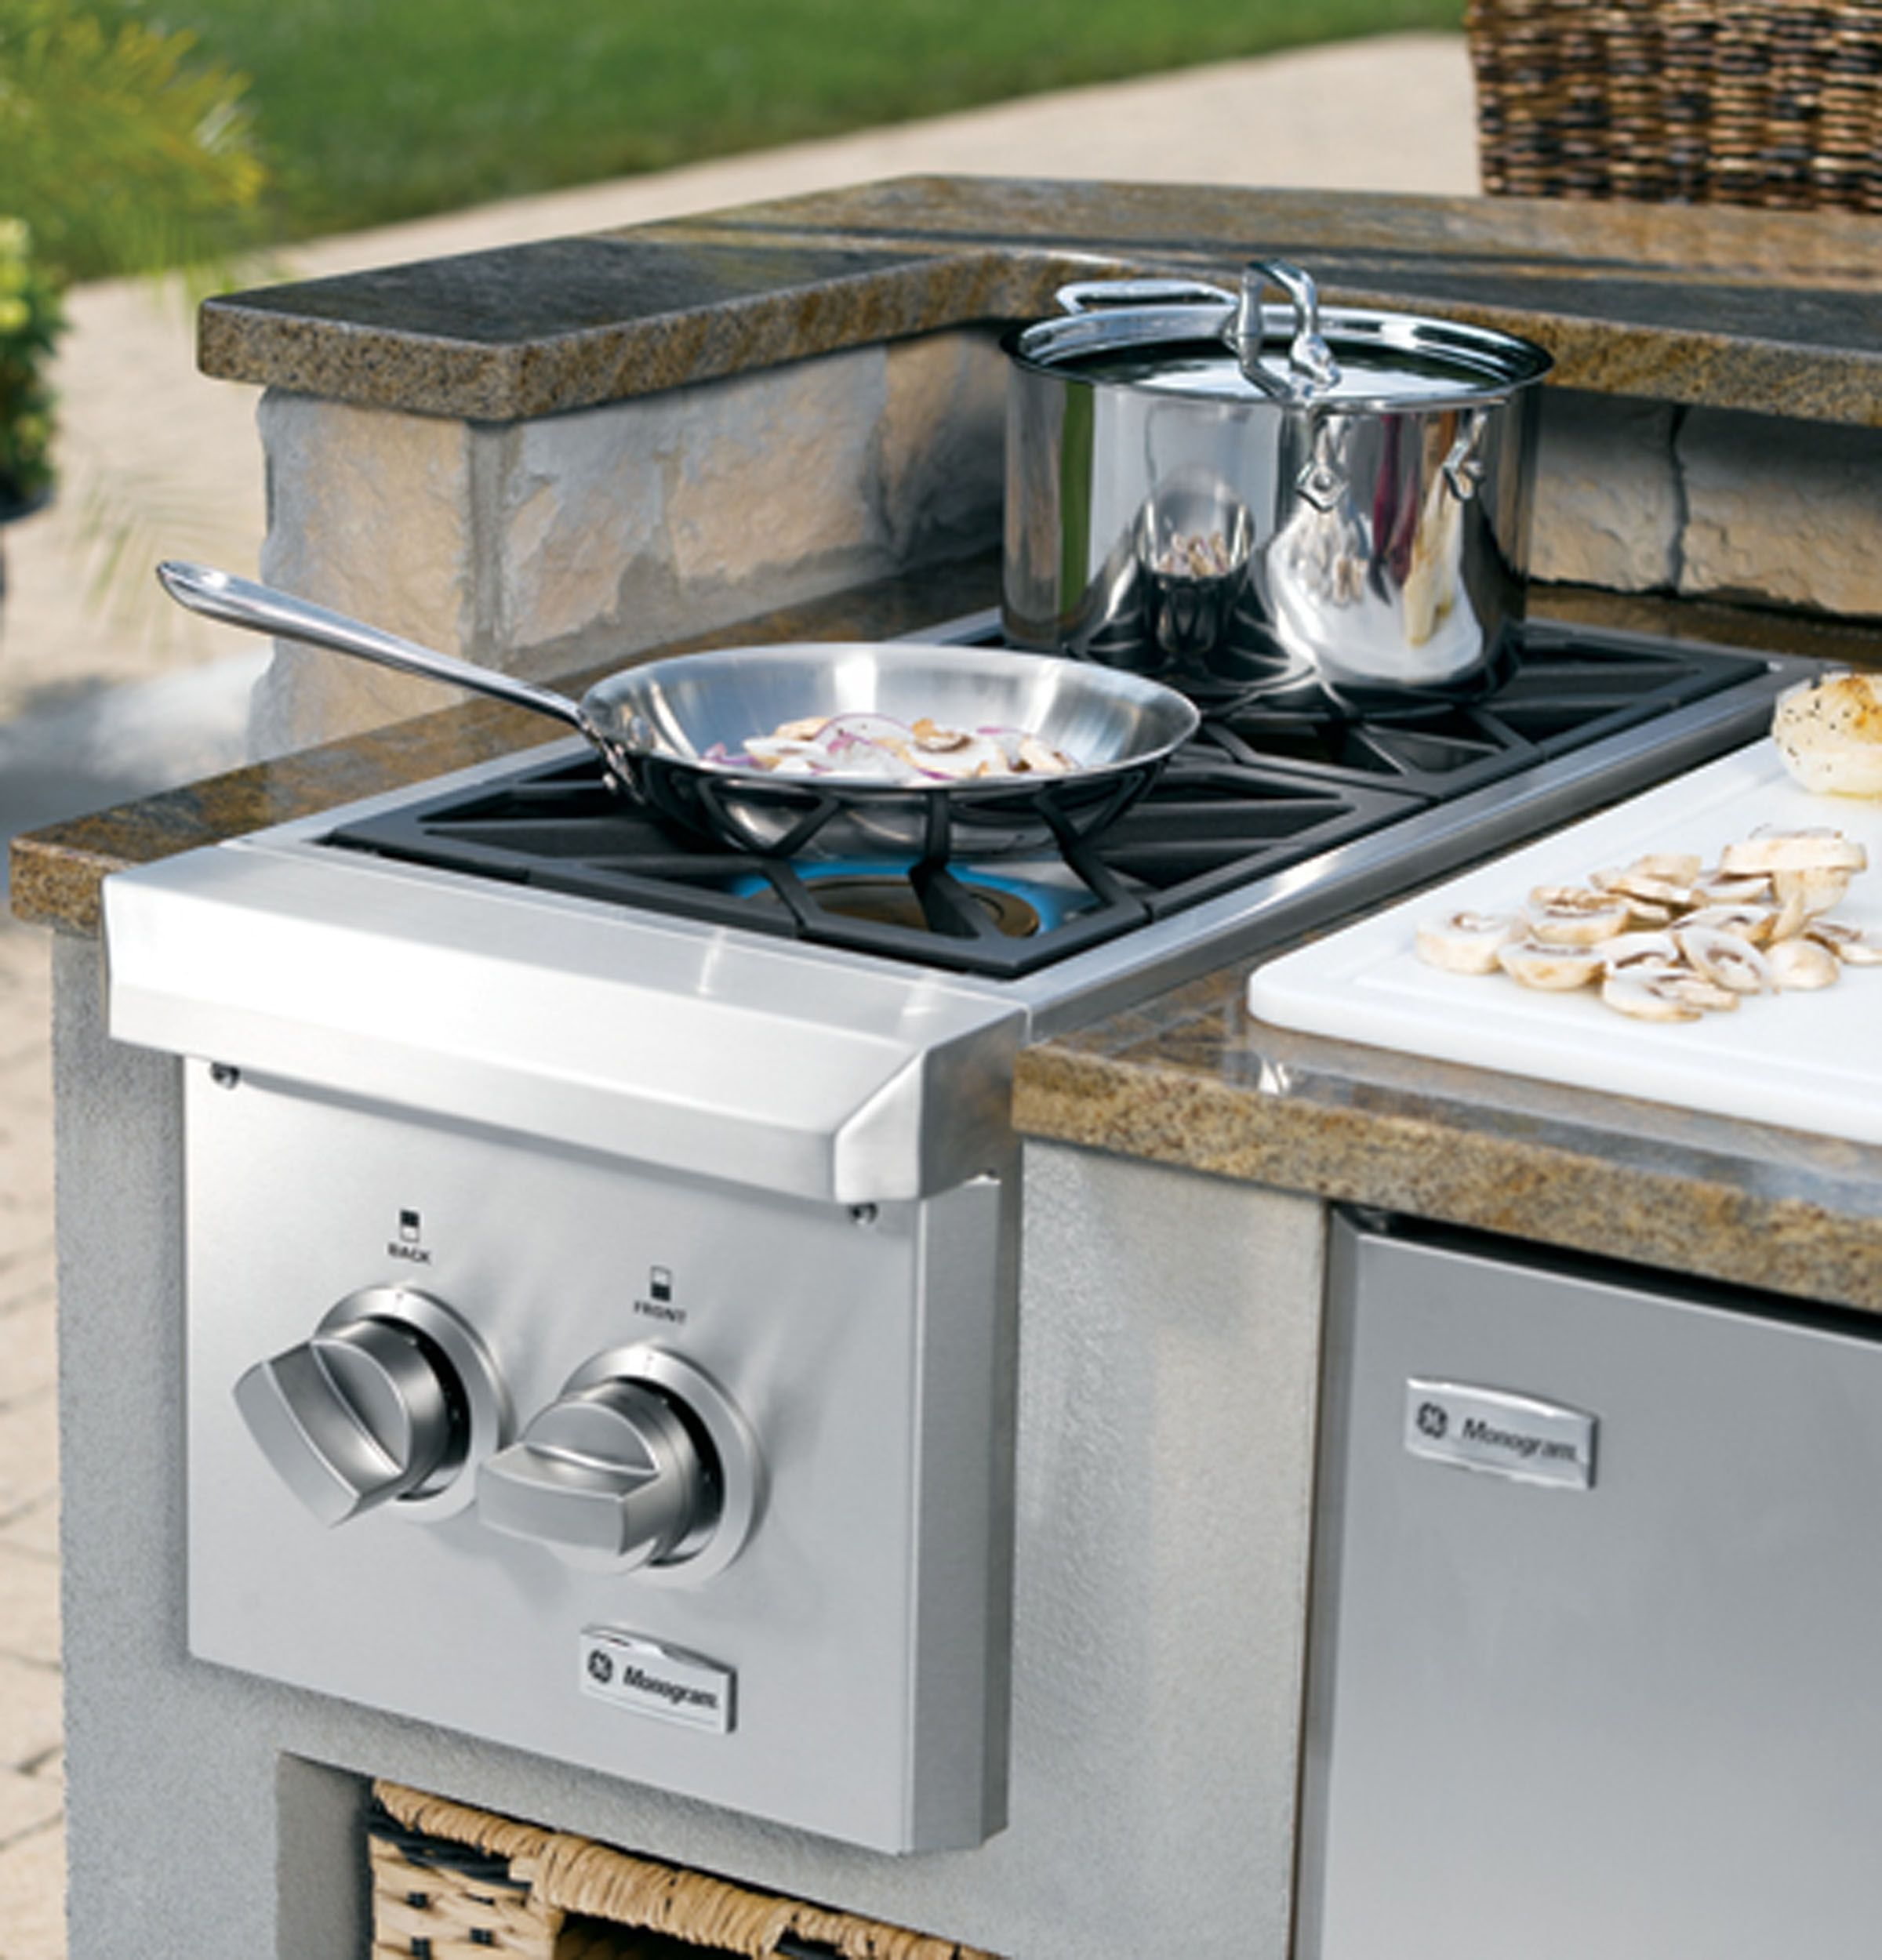 Outdoor Gas Stove Top Buethe Org Gas Stove Top